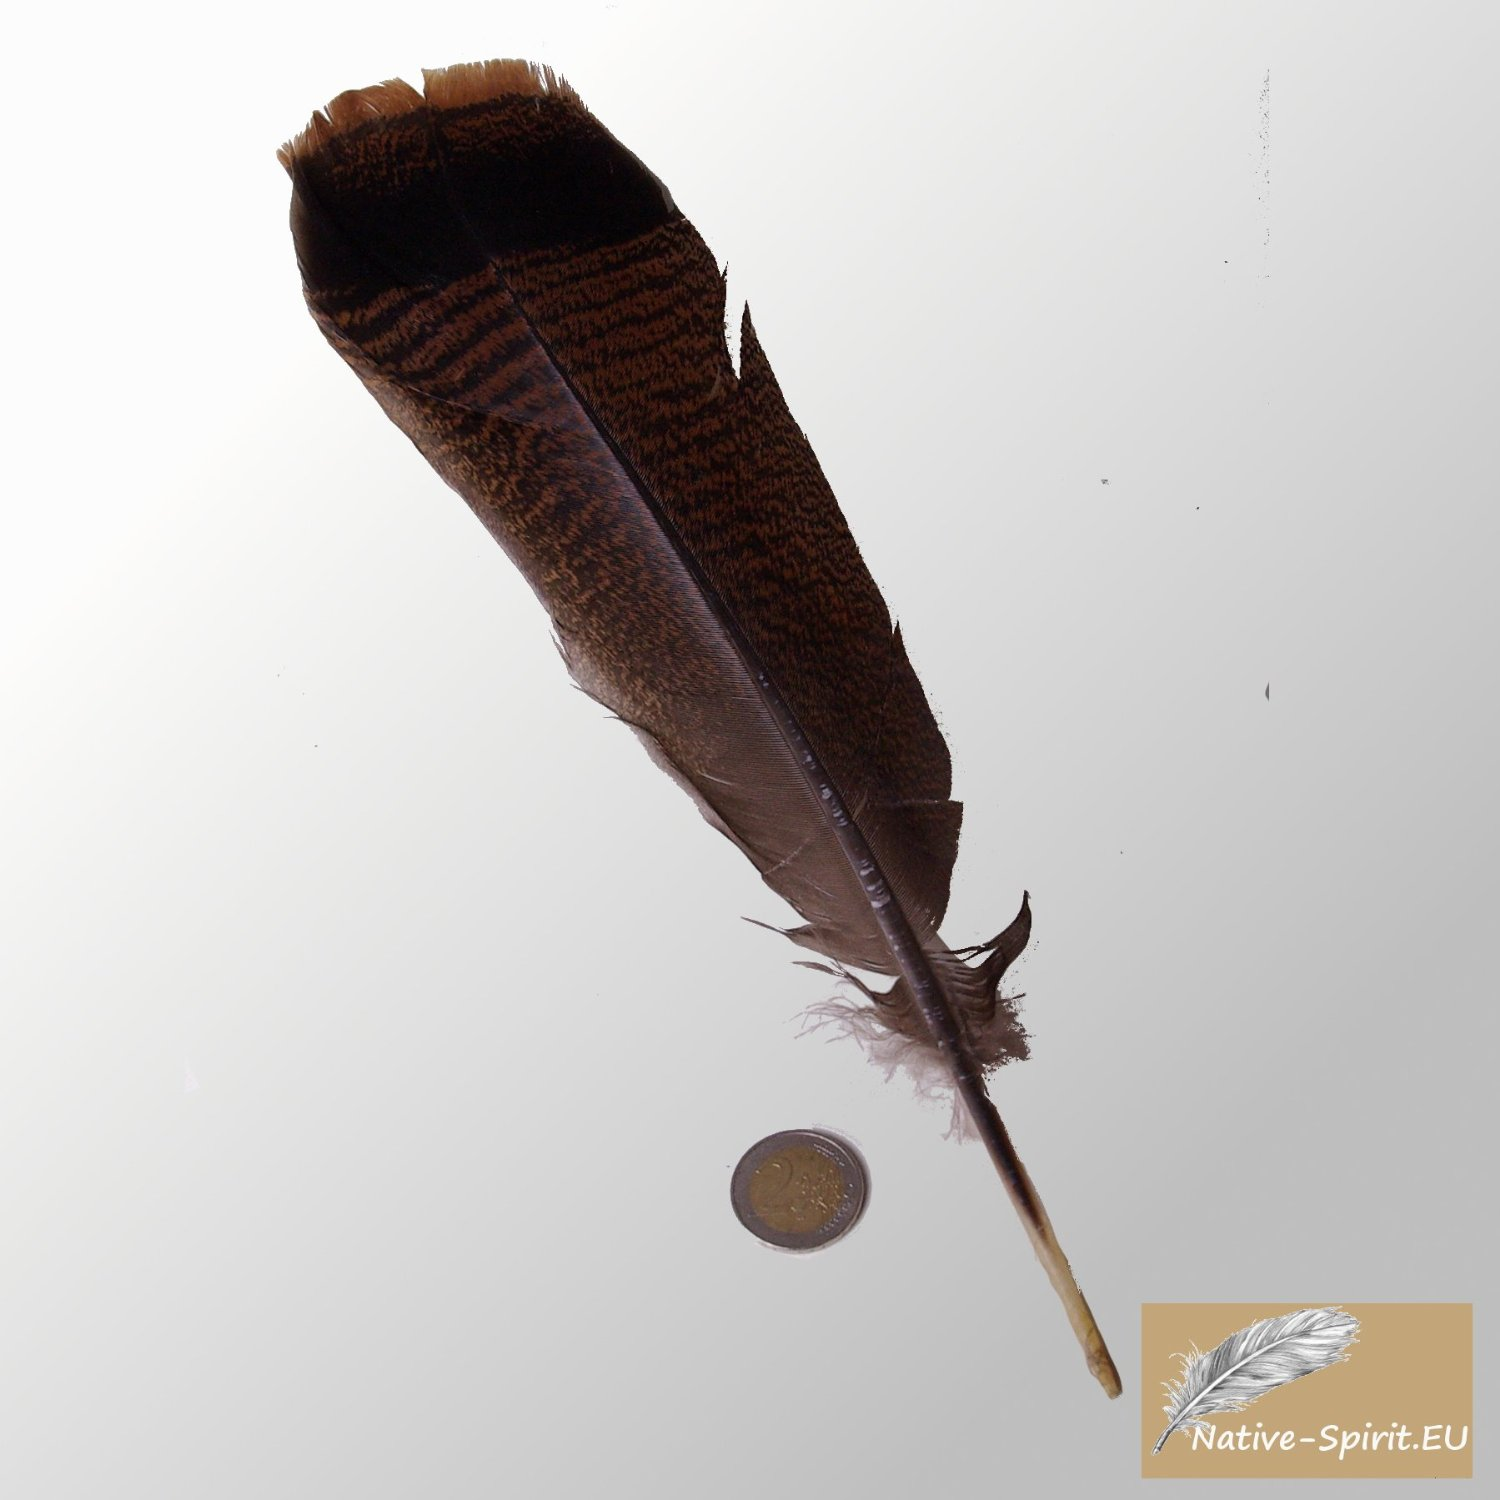 bronzene Truthahn Feder vom wilden Truthahn (wild turkey tail feather), mit natuerlicher huebscher s